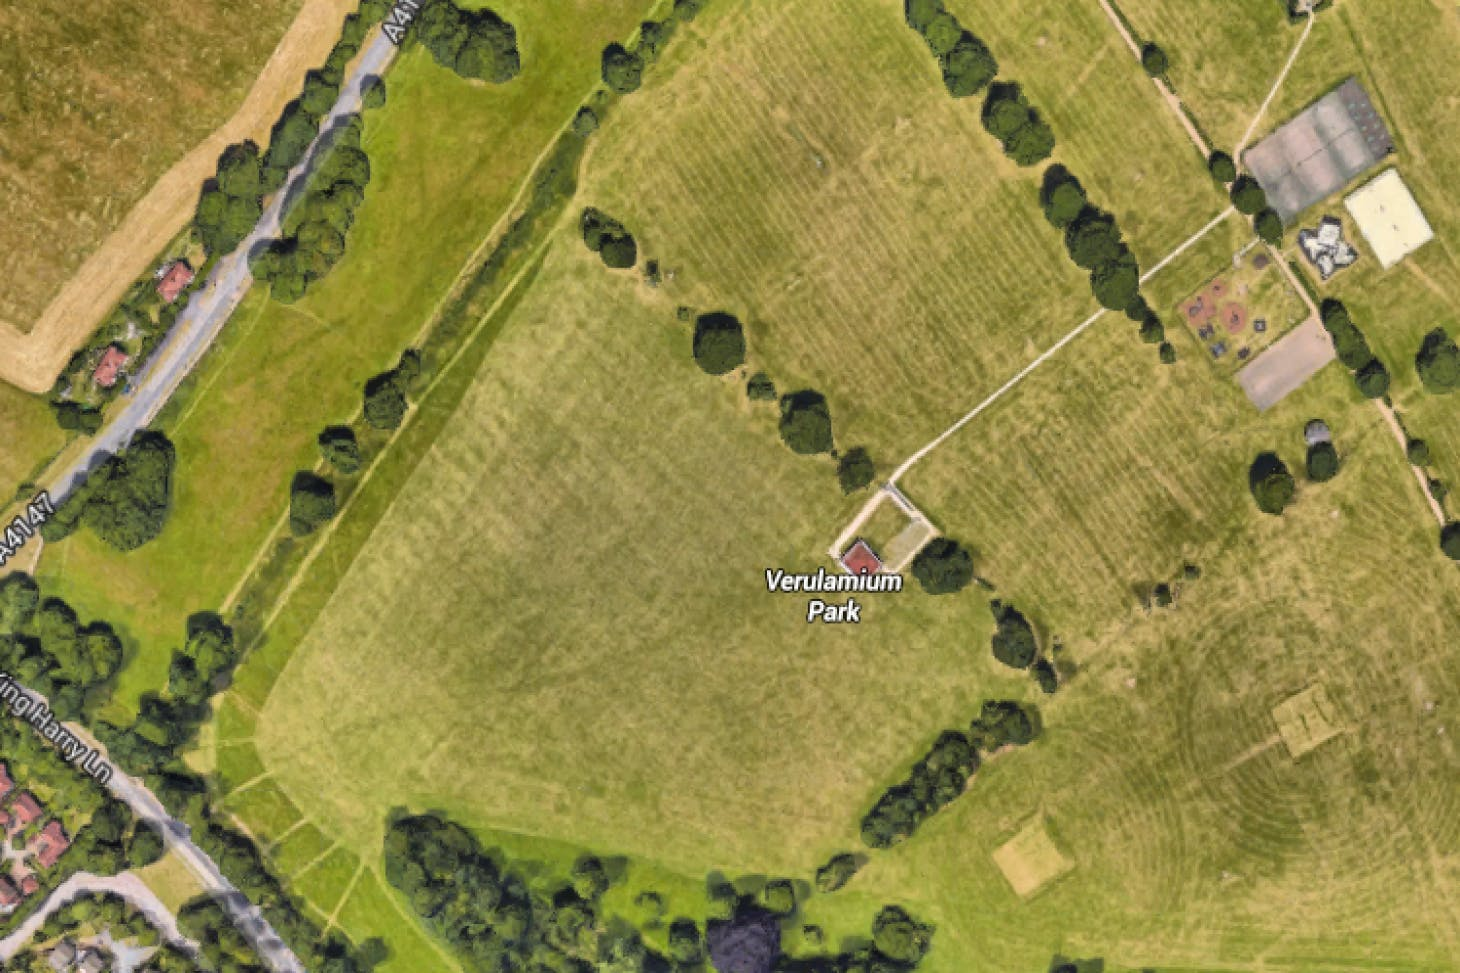 Verulamium Park 11 a side | Grass football pitch